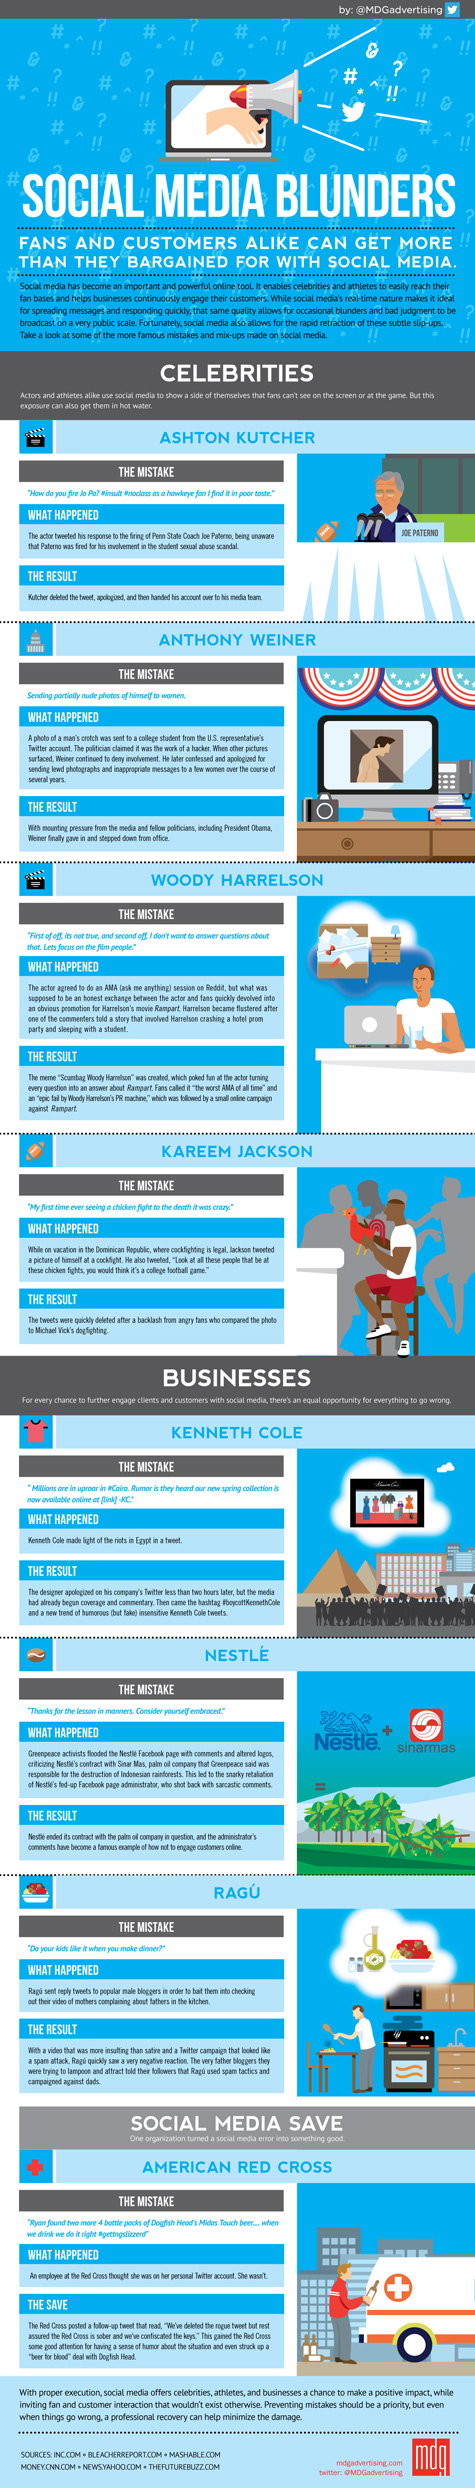 social media blunders infographic 475